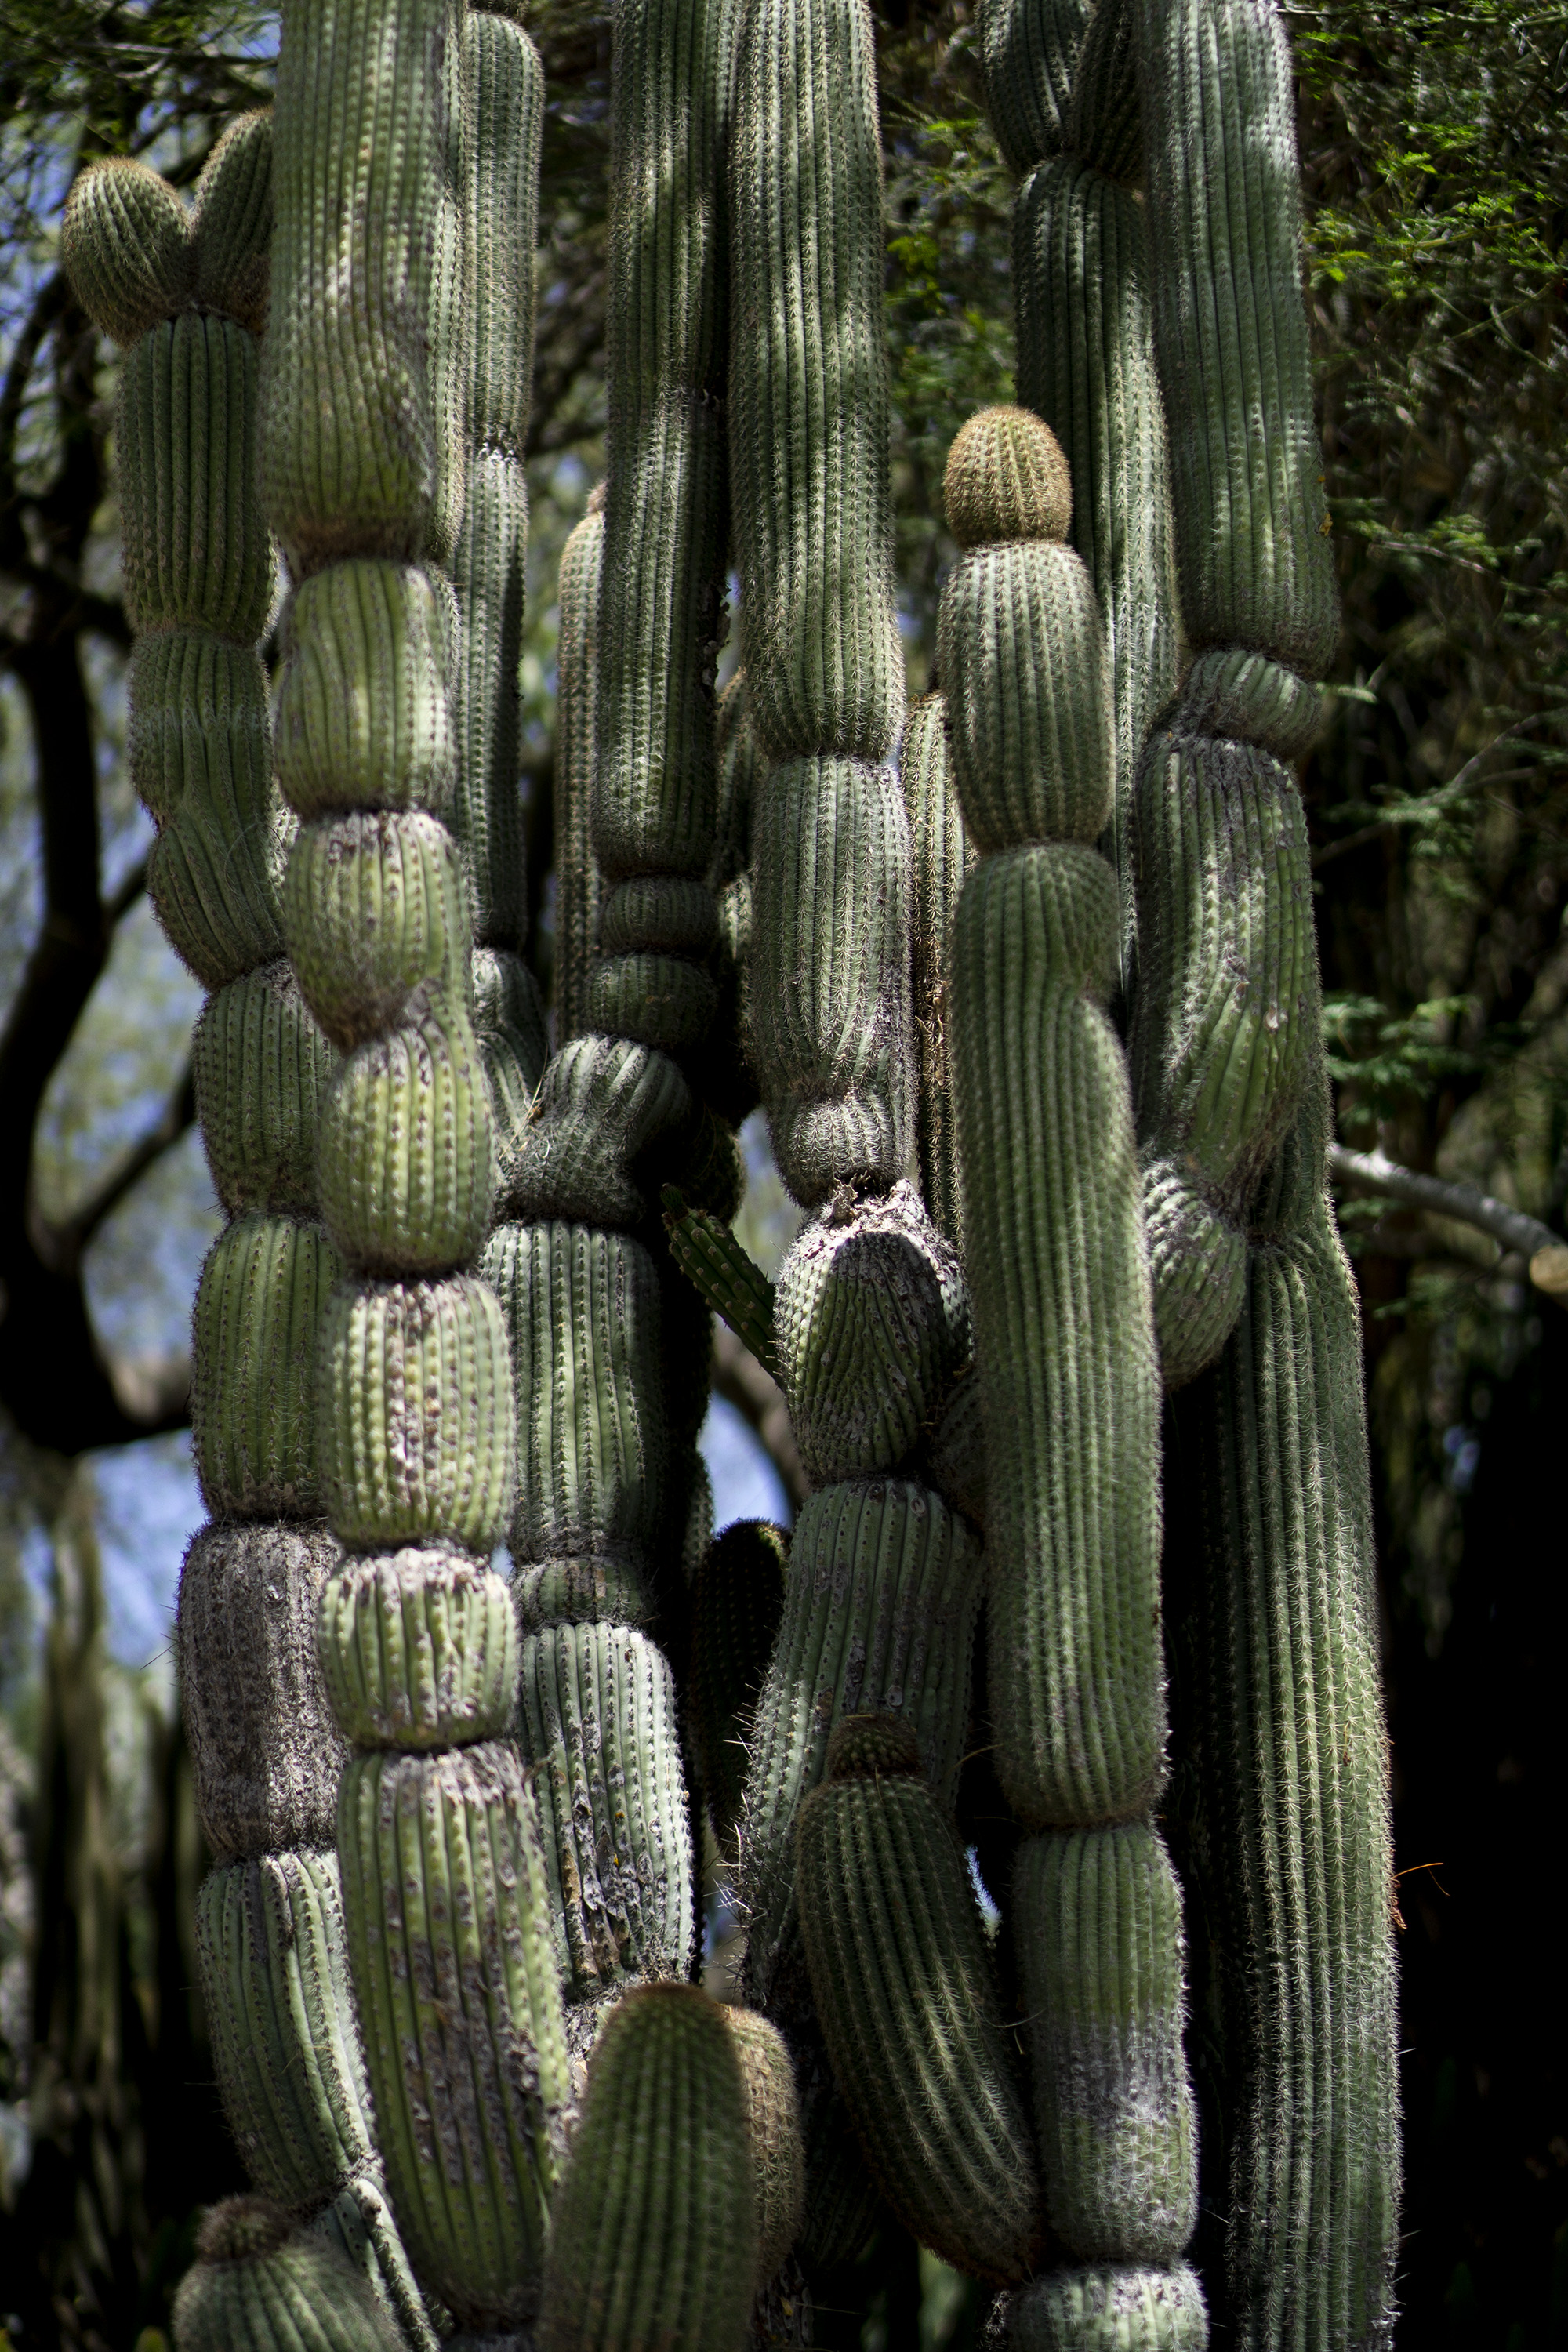 Tall, smooth cactus in dappled shade, Desert Garden, Huntington Library, San Marino CA / Darker than Green